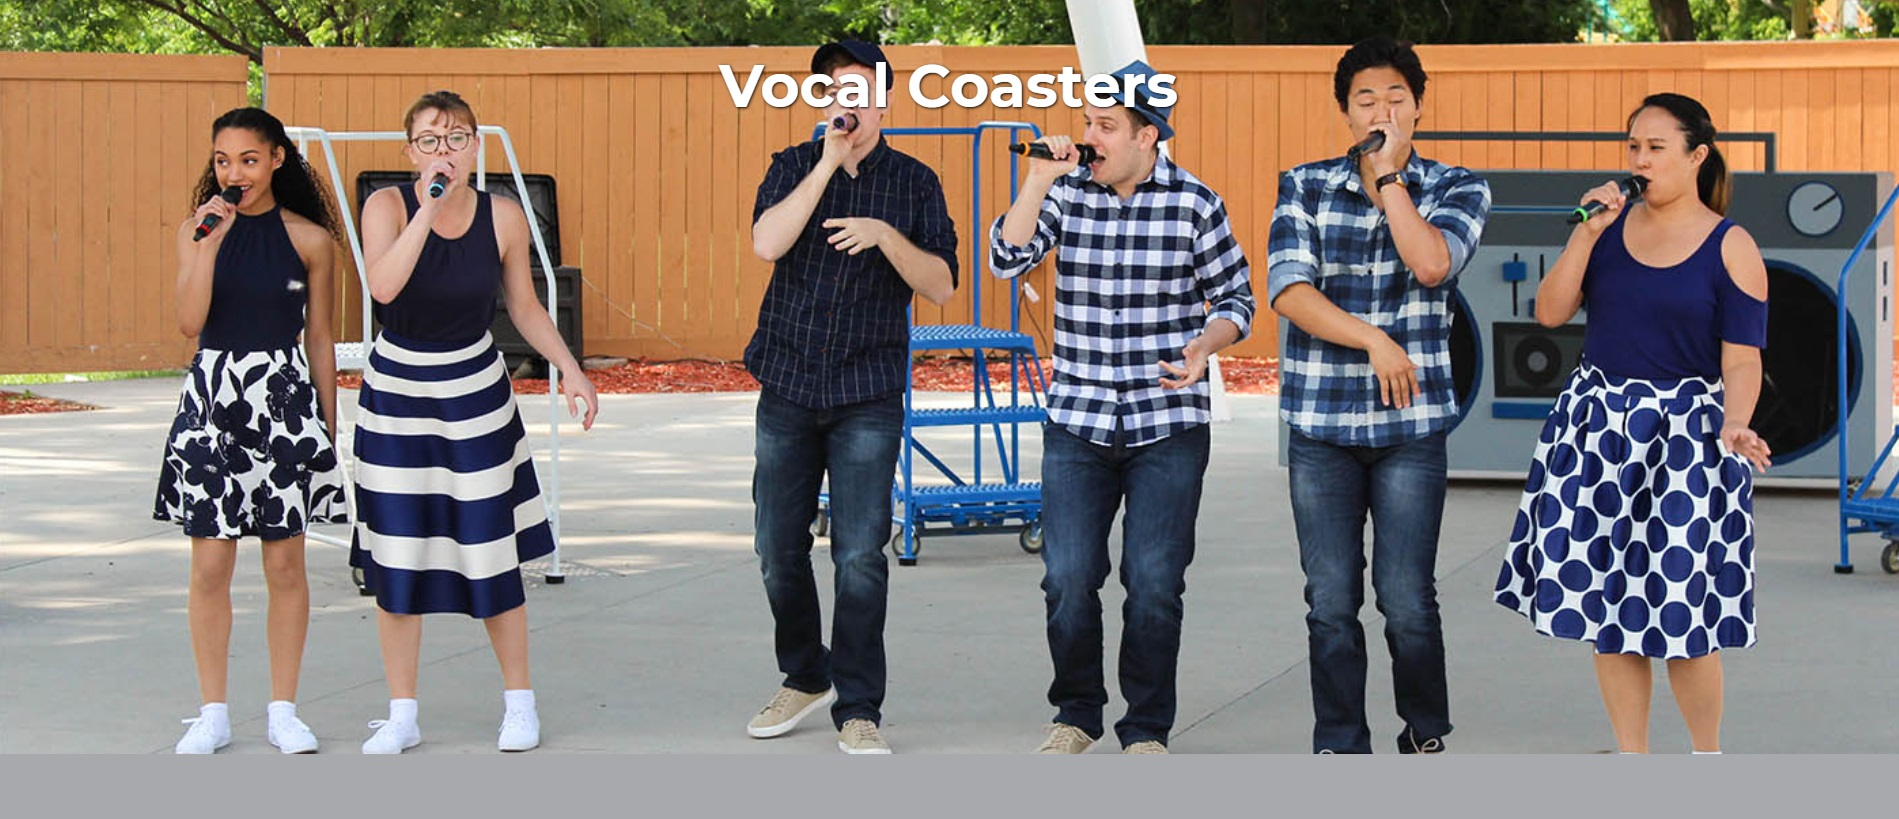 Vocal Coasters